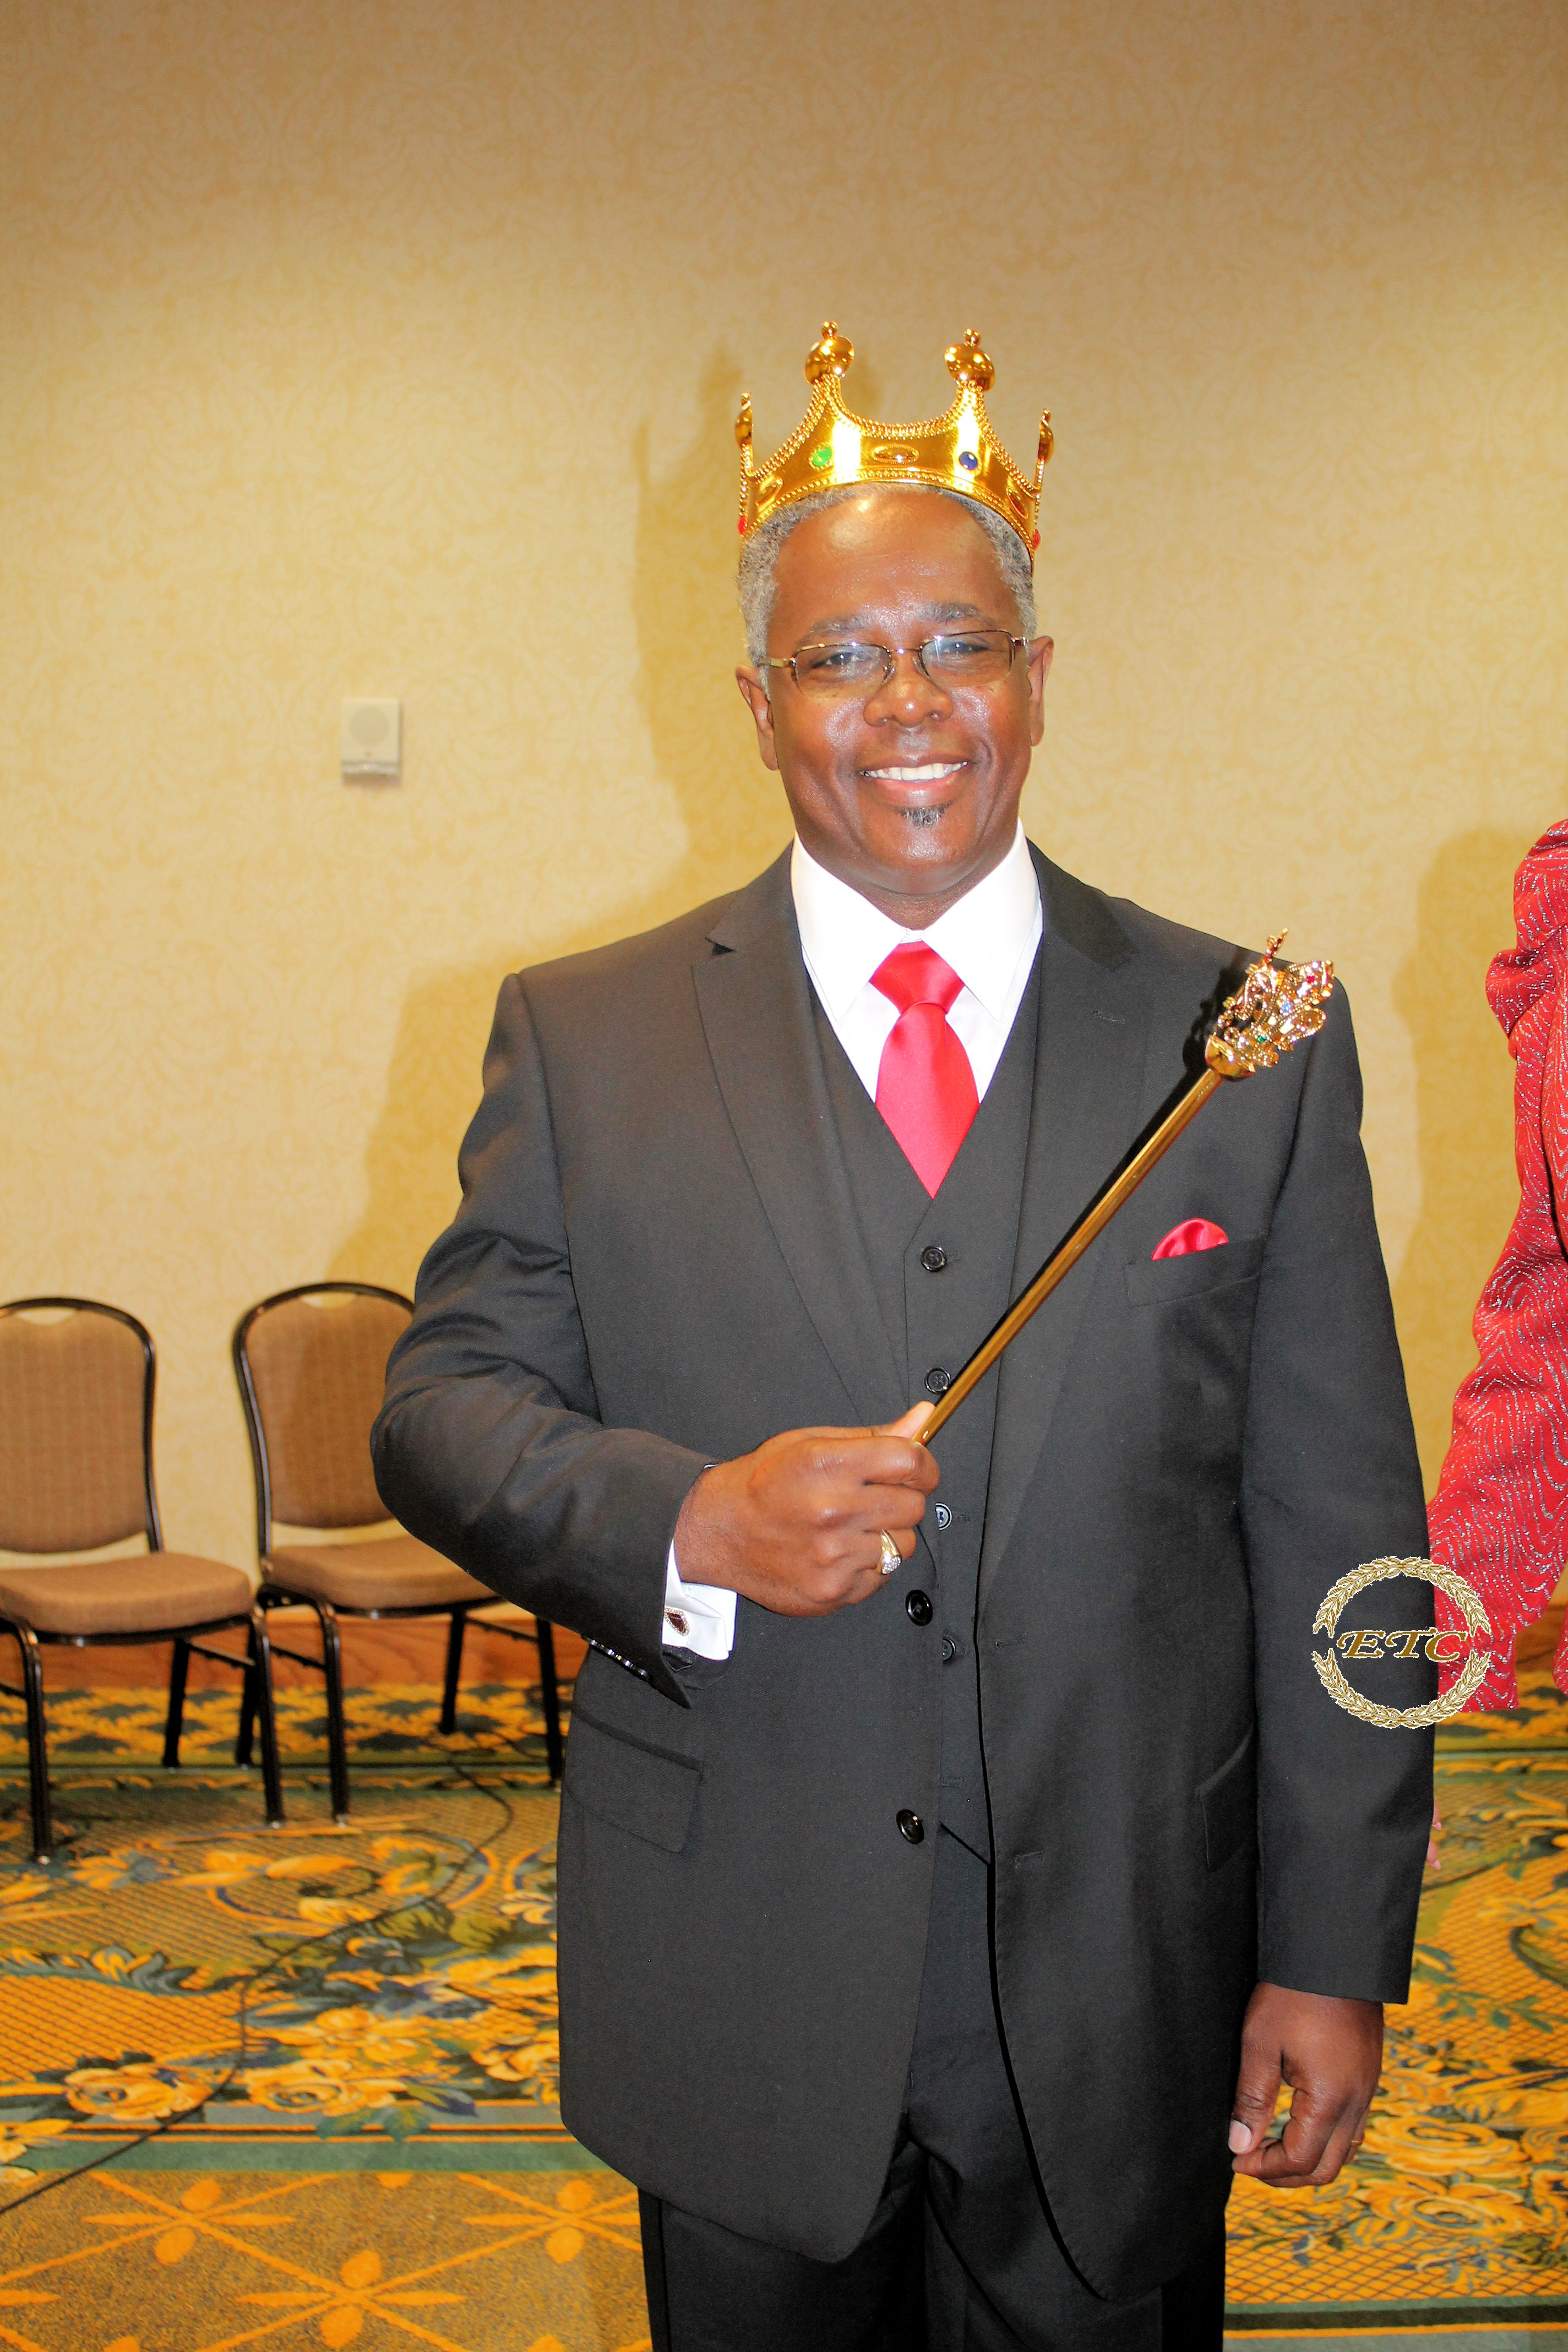 King Rev. Gregory Gay, Sr.